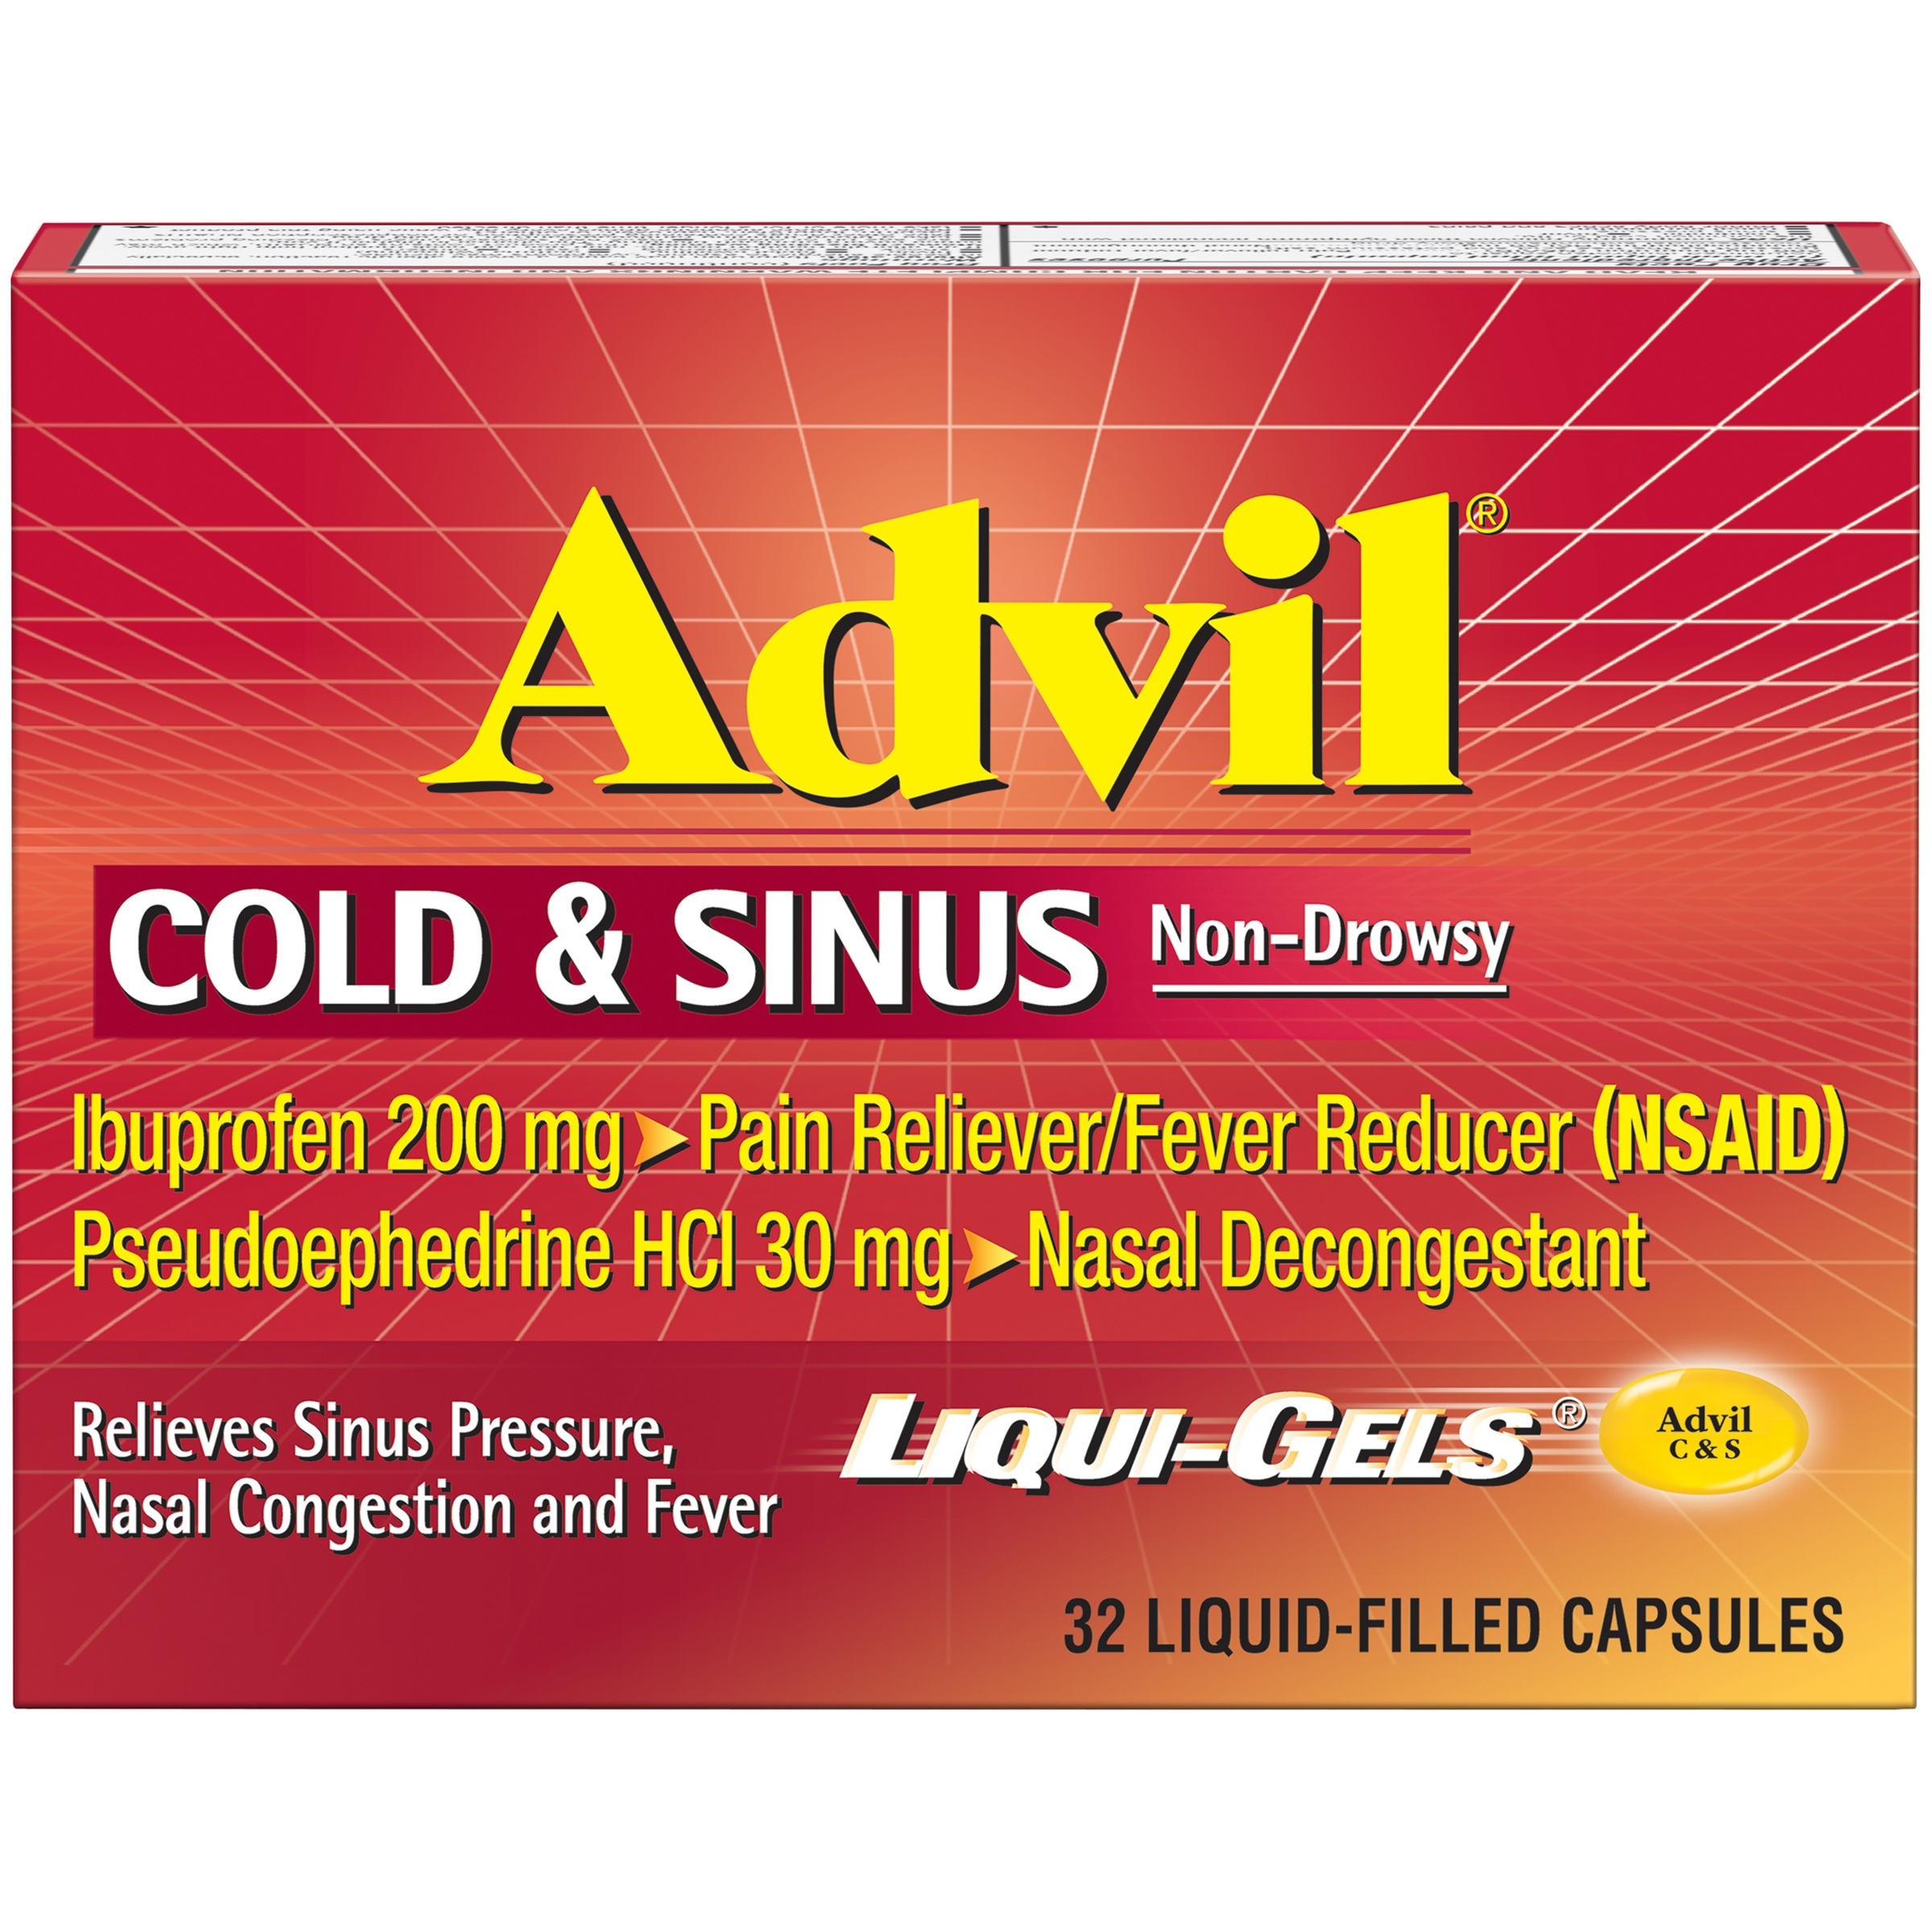 advil® cold & sinus non-drowsy pain reliever/fever reducer